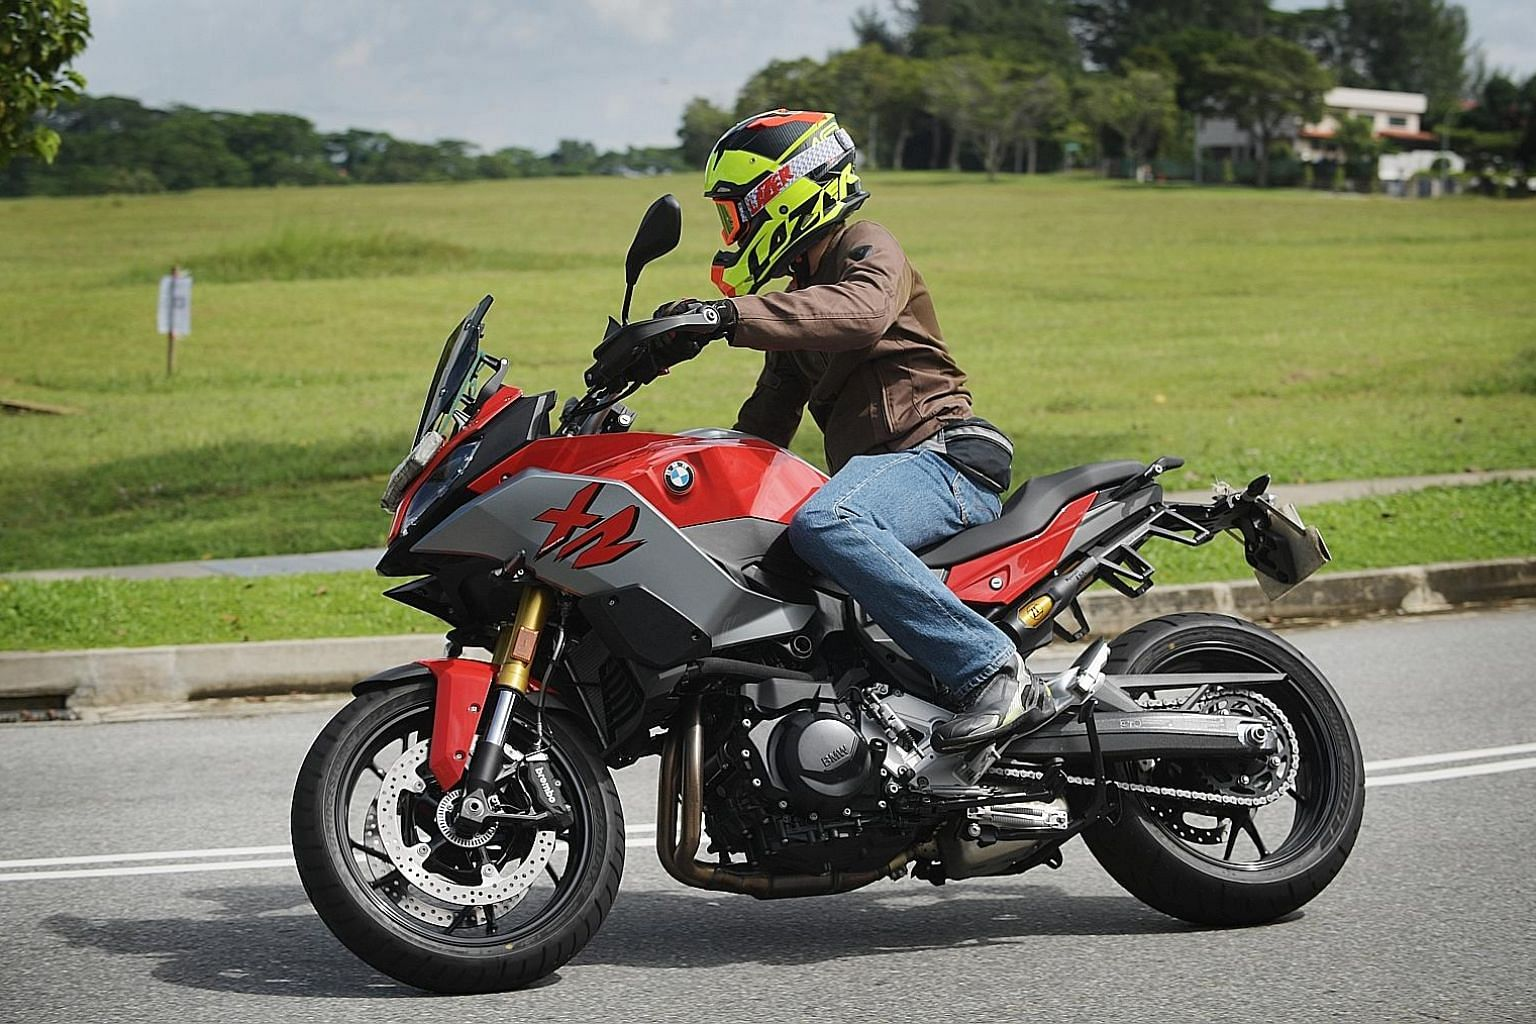 The BMW F900 XR has Bluetooth connectivity, keyless ignition, quickshift system and LED headlights which light up corners during a turn.